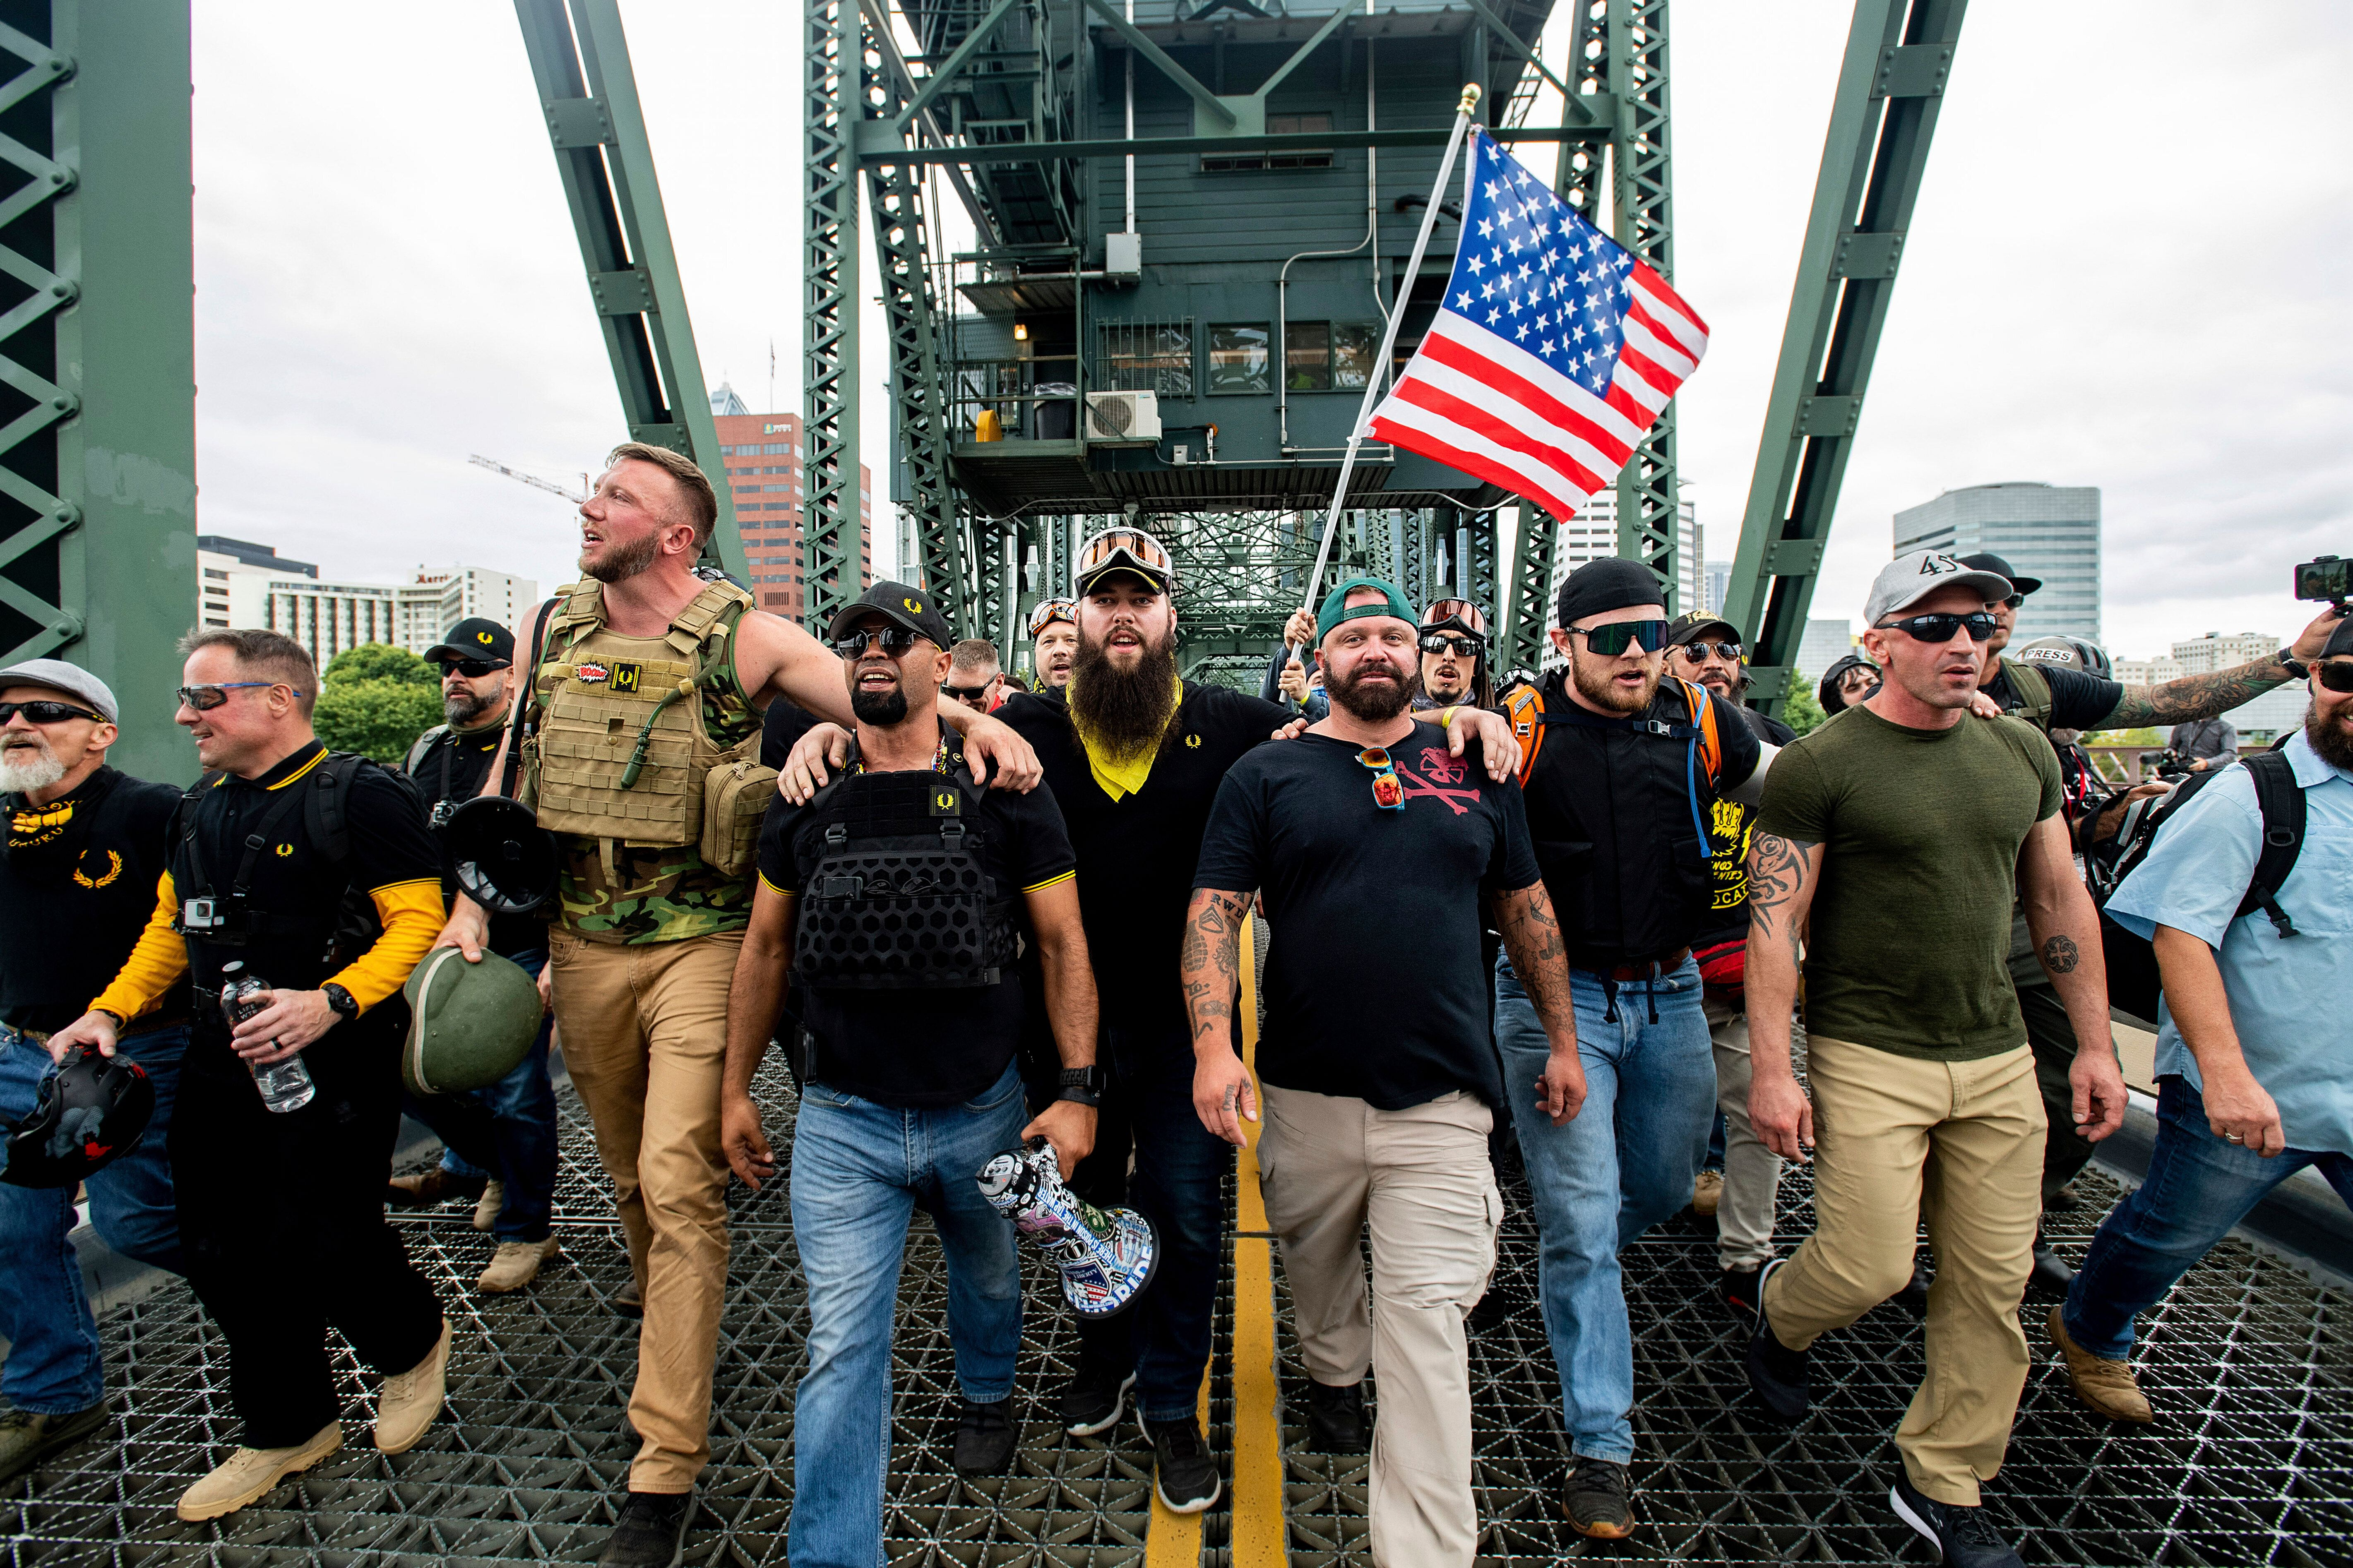 Members of the Proud Boys and other right-wing demonstrators march across the Hawthorne Bridge during a rally in Portland, Or